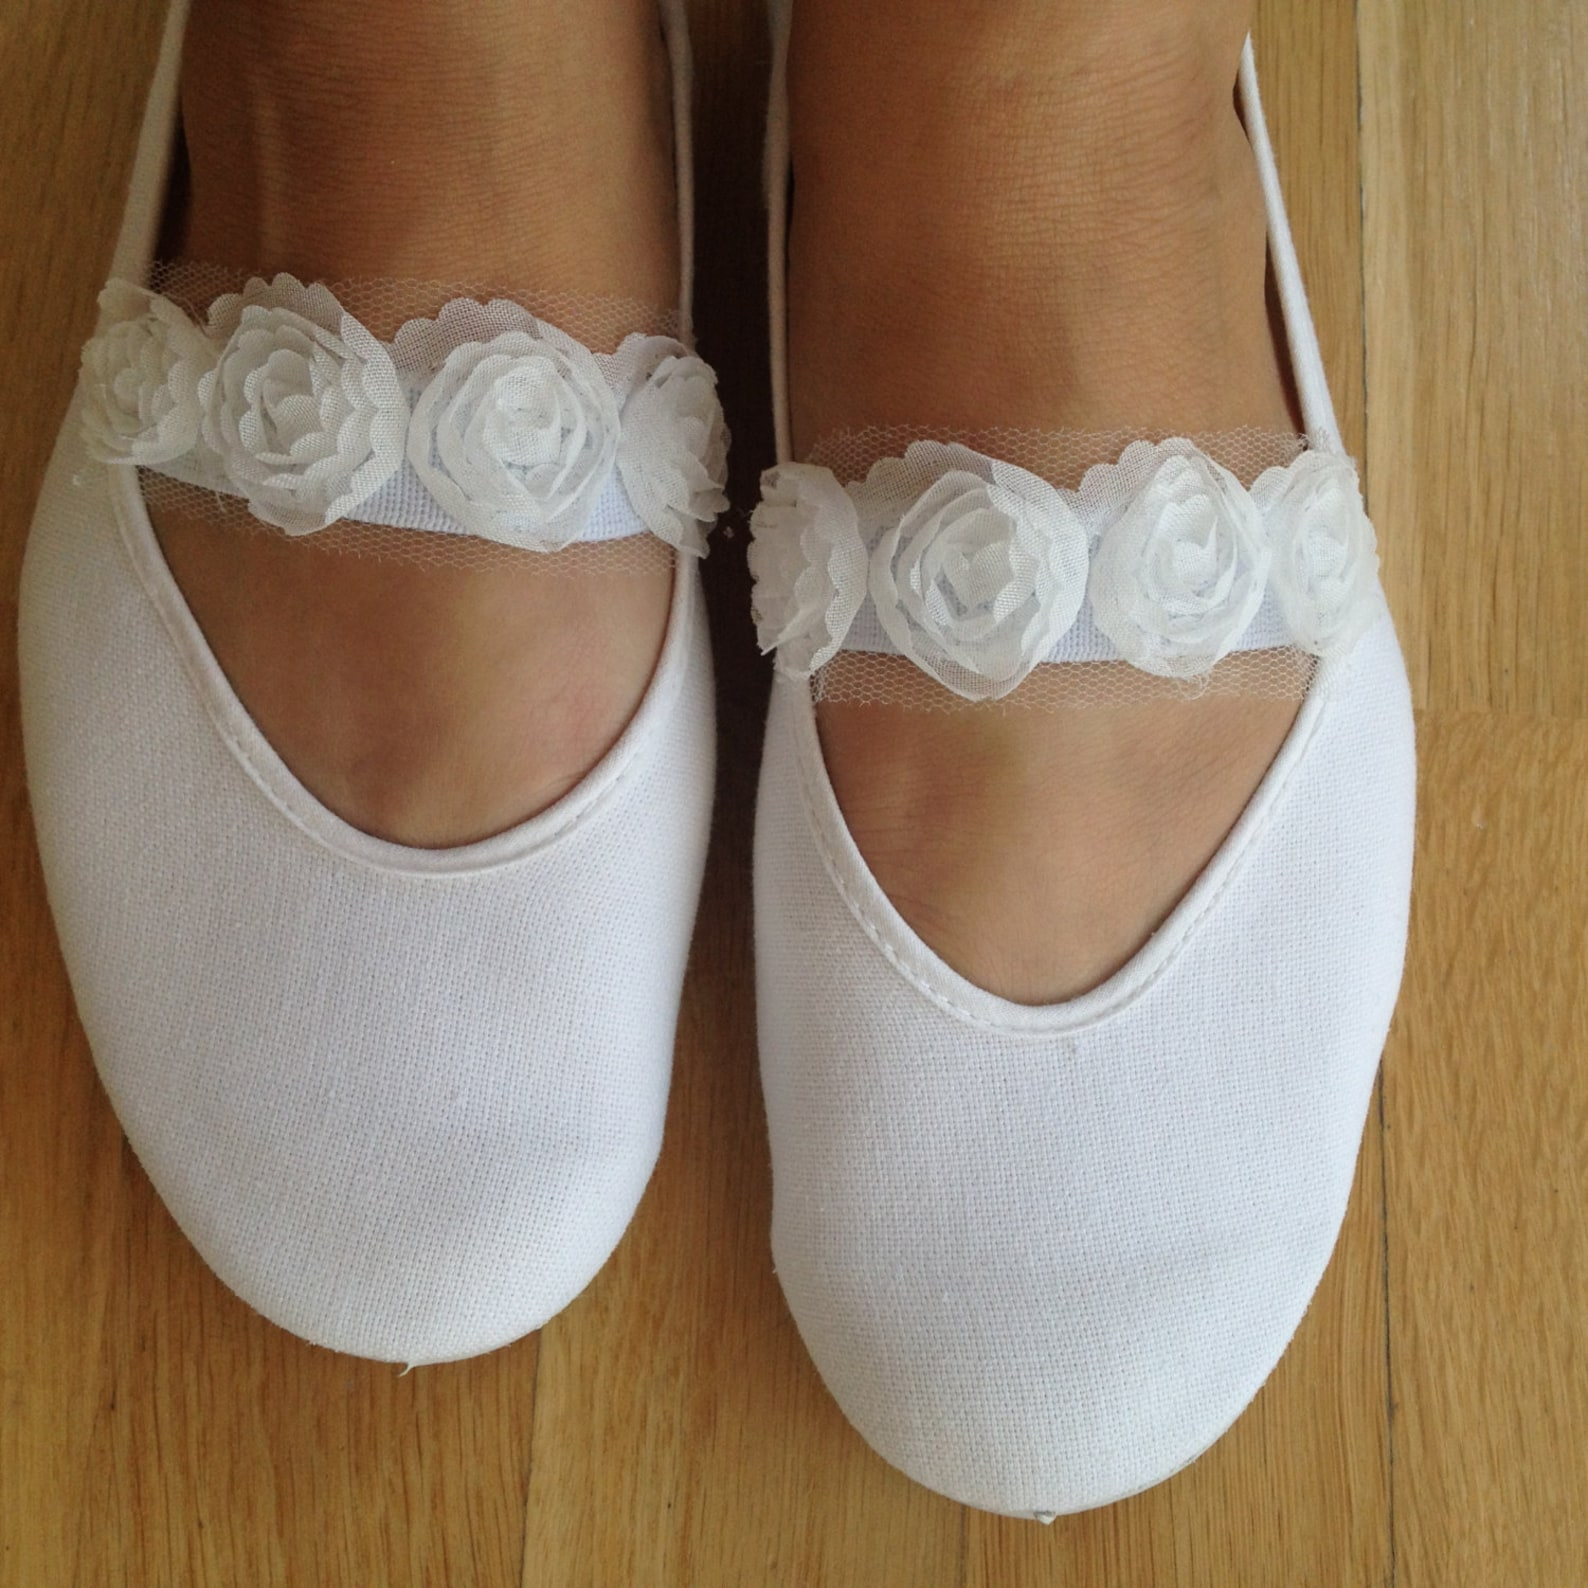 wedding shoes,wedding flats,girls shoes,mary jane shoes,bridal flats,wedding ballet flats,bridal shoes,summer dress shoes,flower